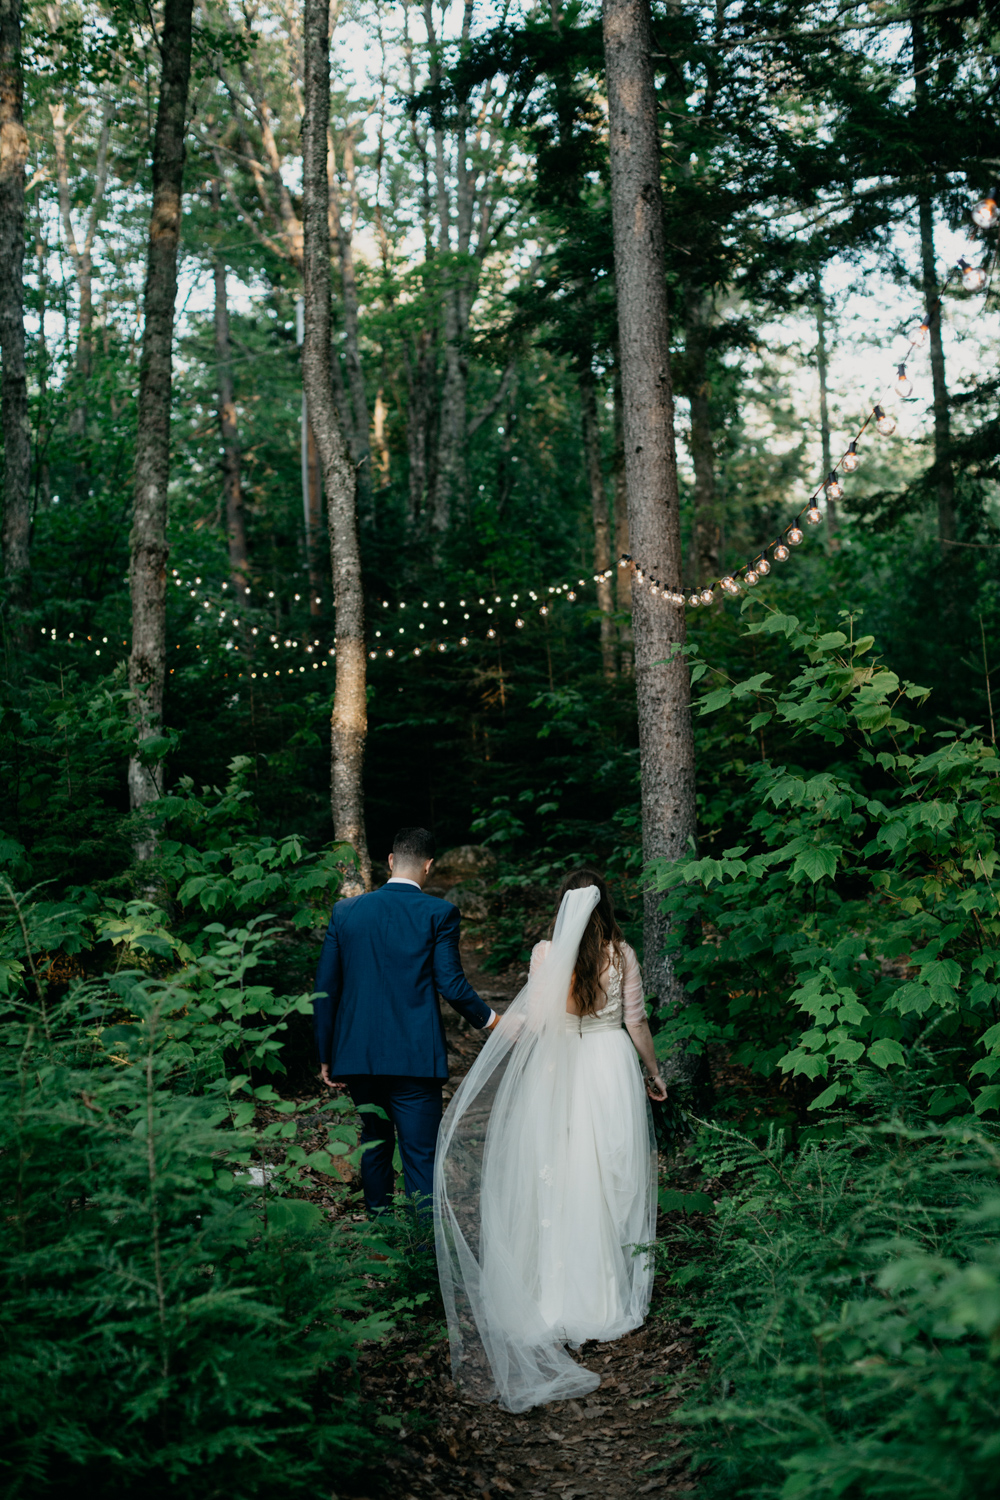 009_Branch_lake_wedding_maine_woodsy_Leah_Fisher.jpg